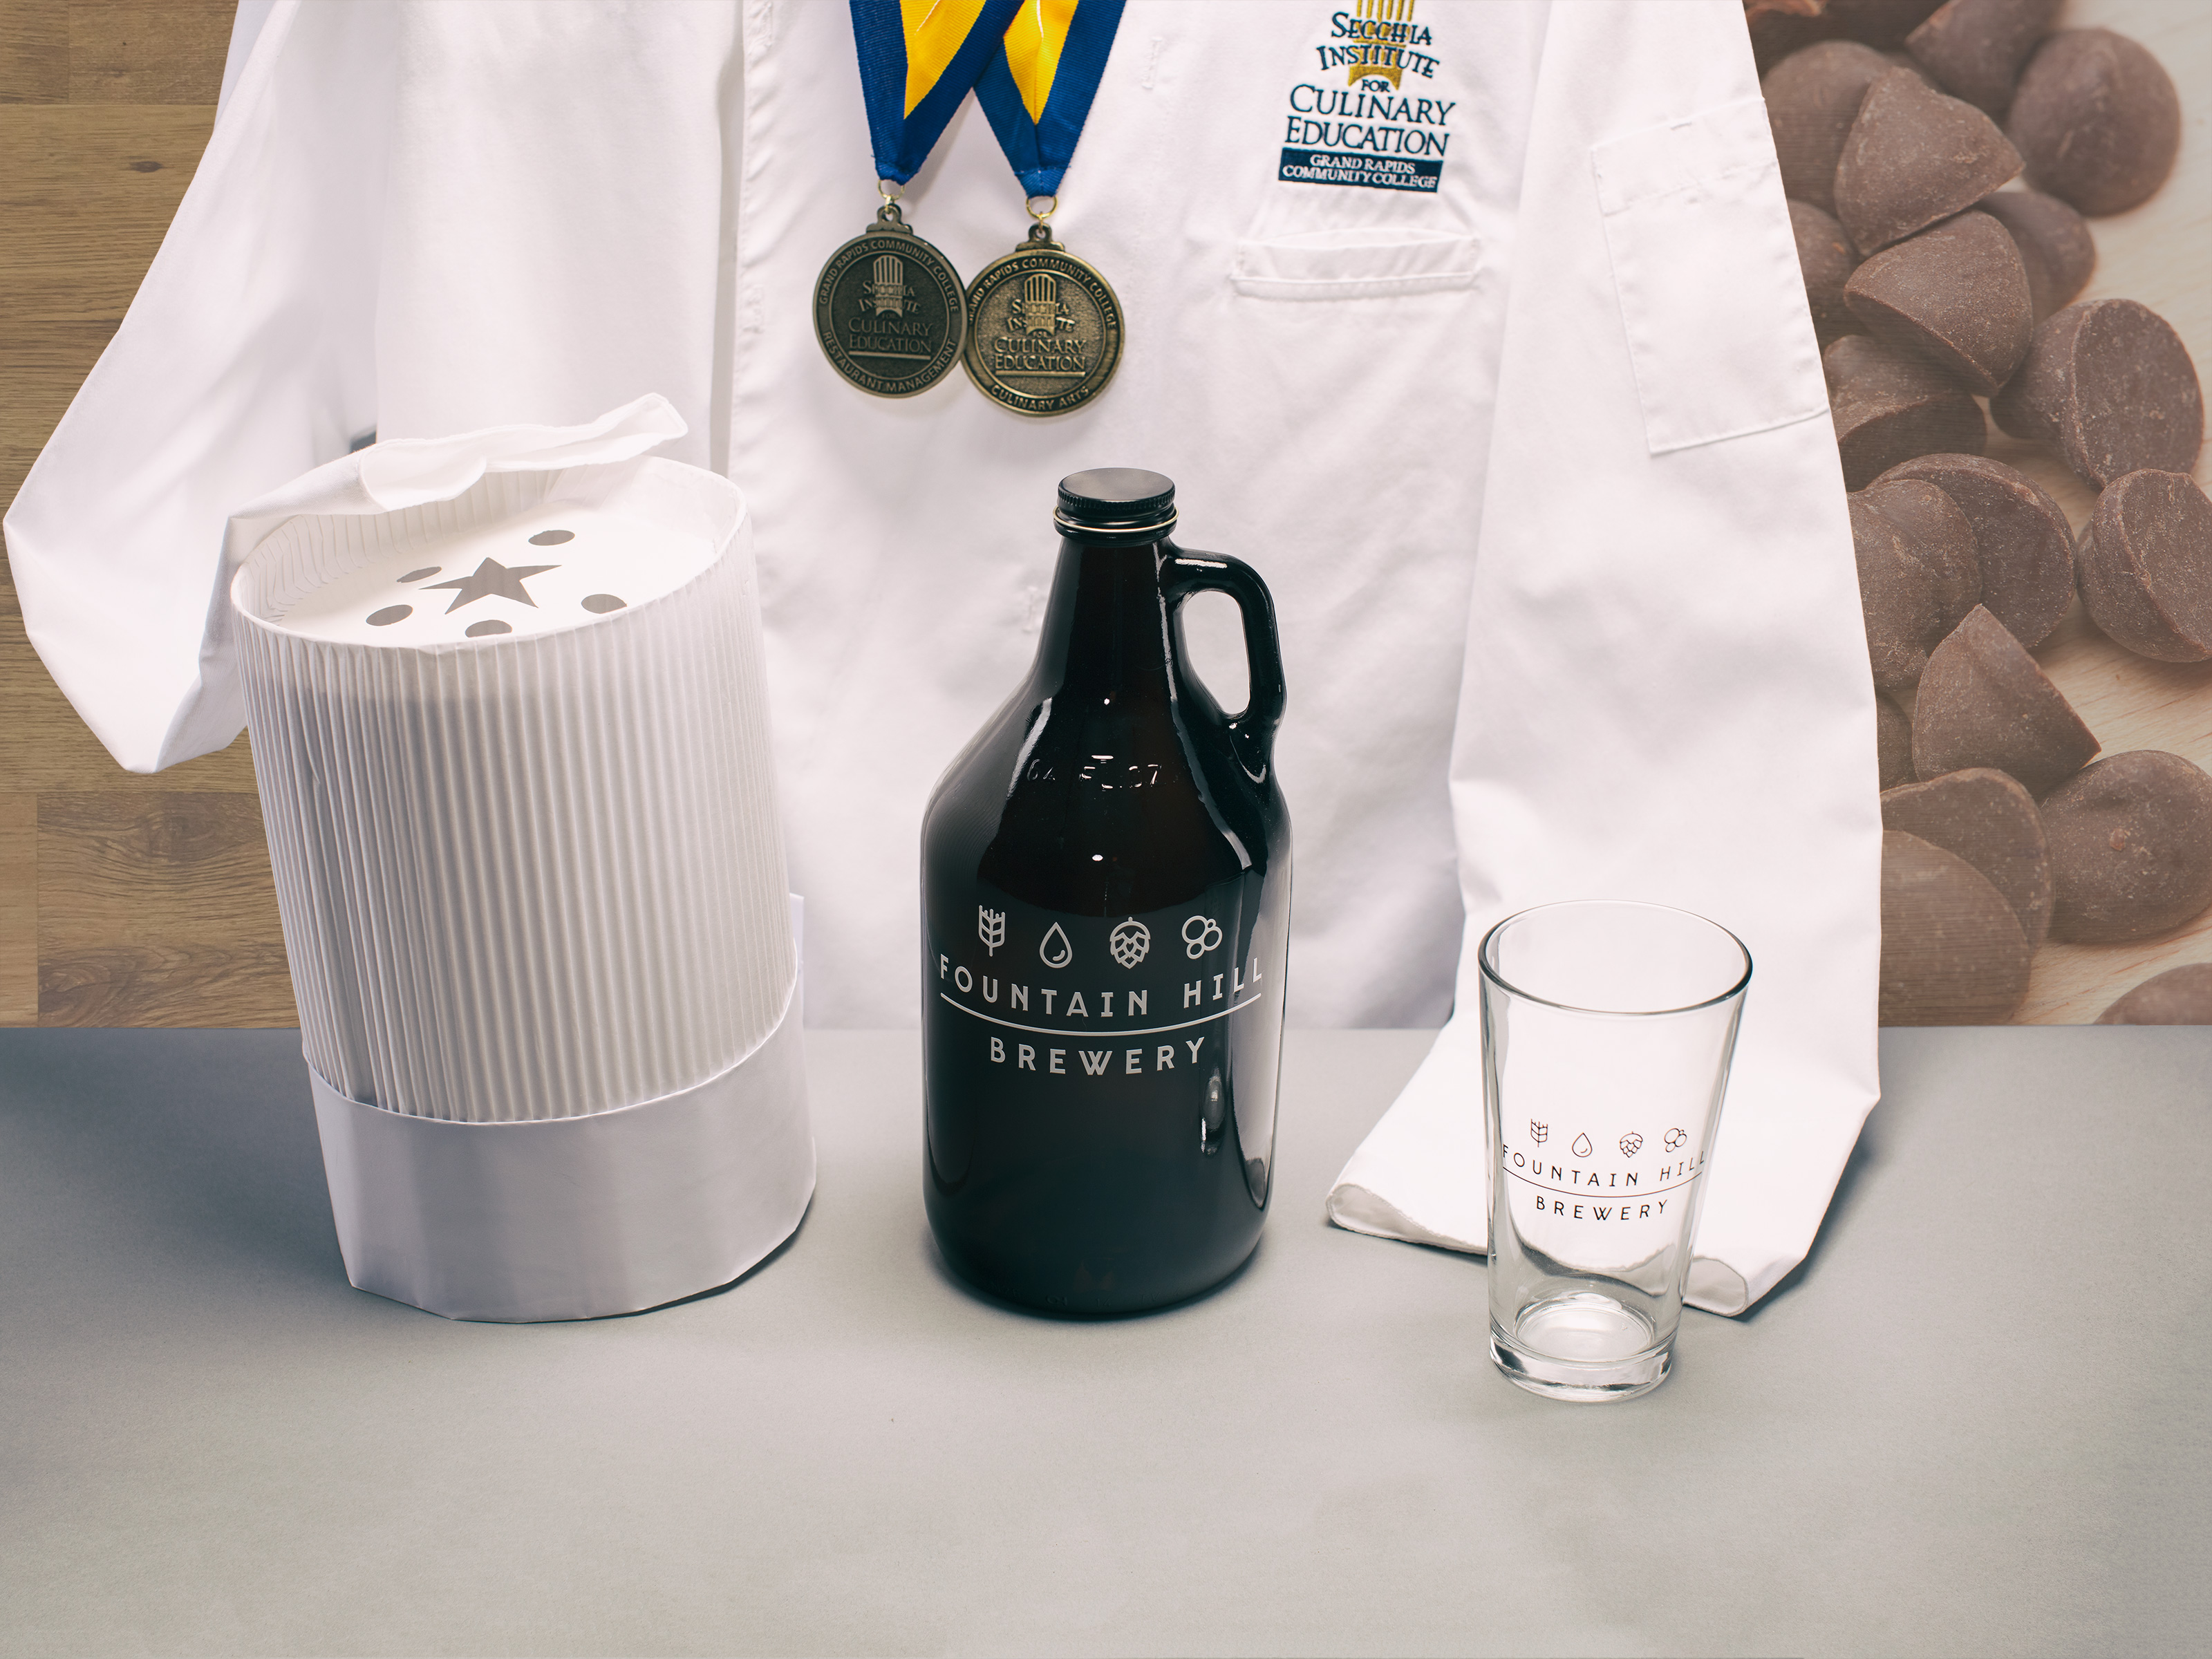 Culinary Arts, Hospitality, and Brewing Pathway